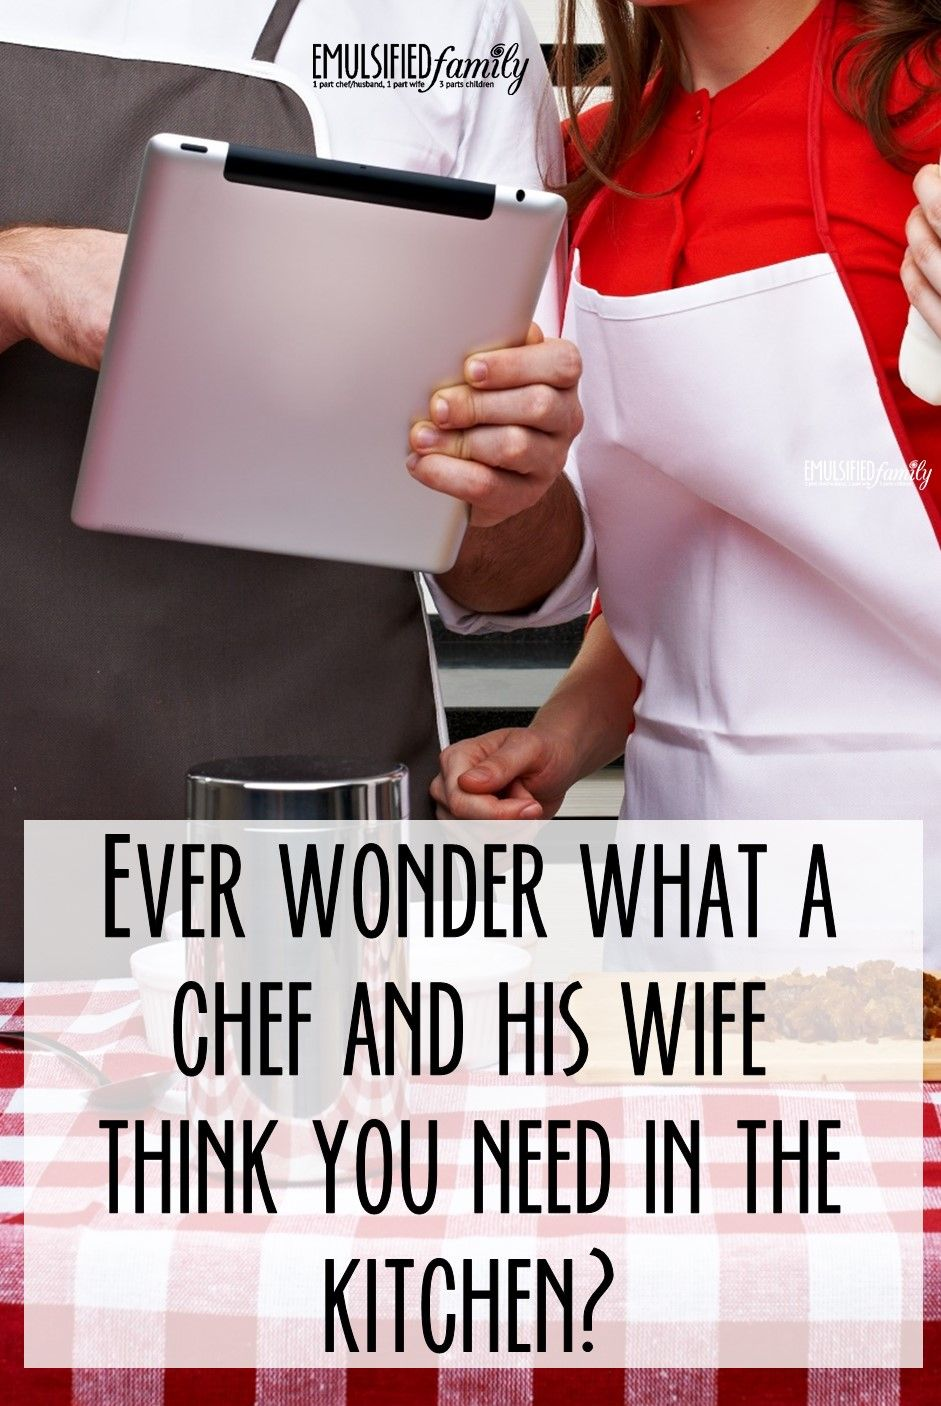 What a Chef and His Wife Think You Need in the Kitchen